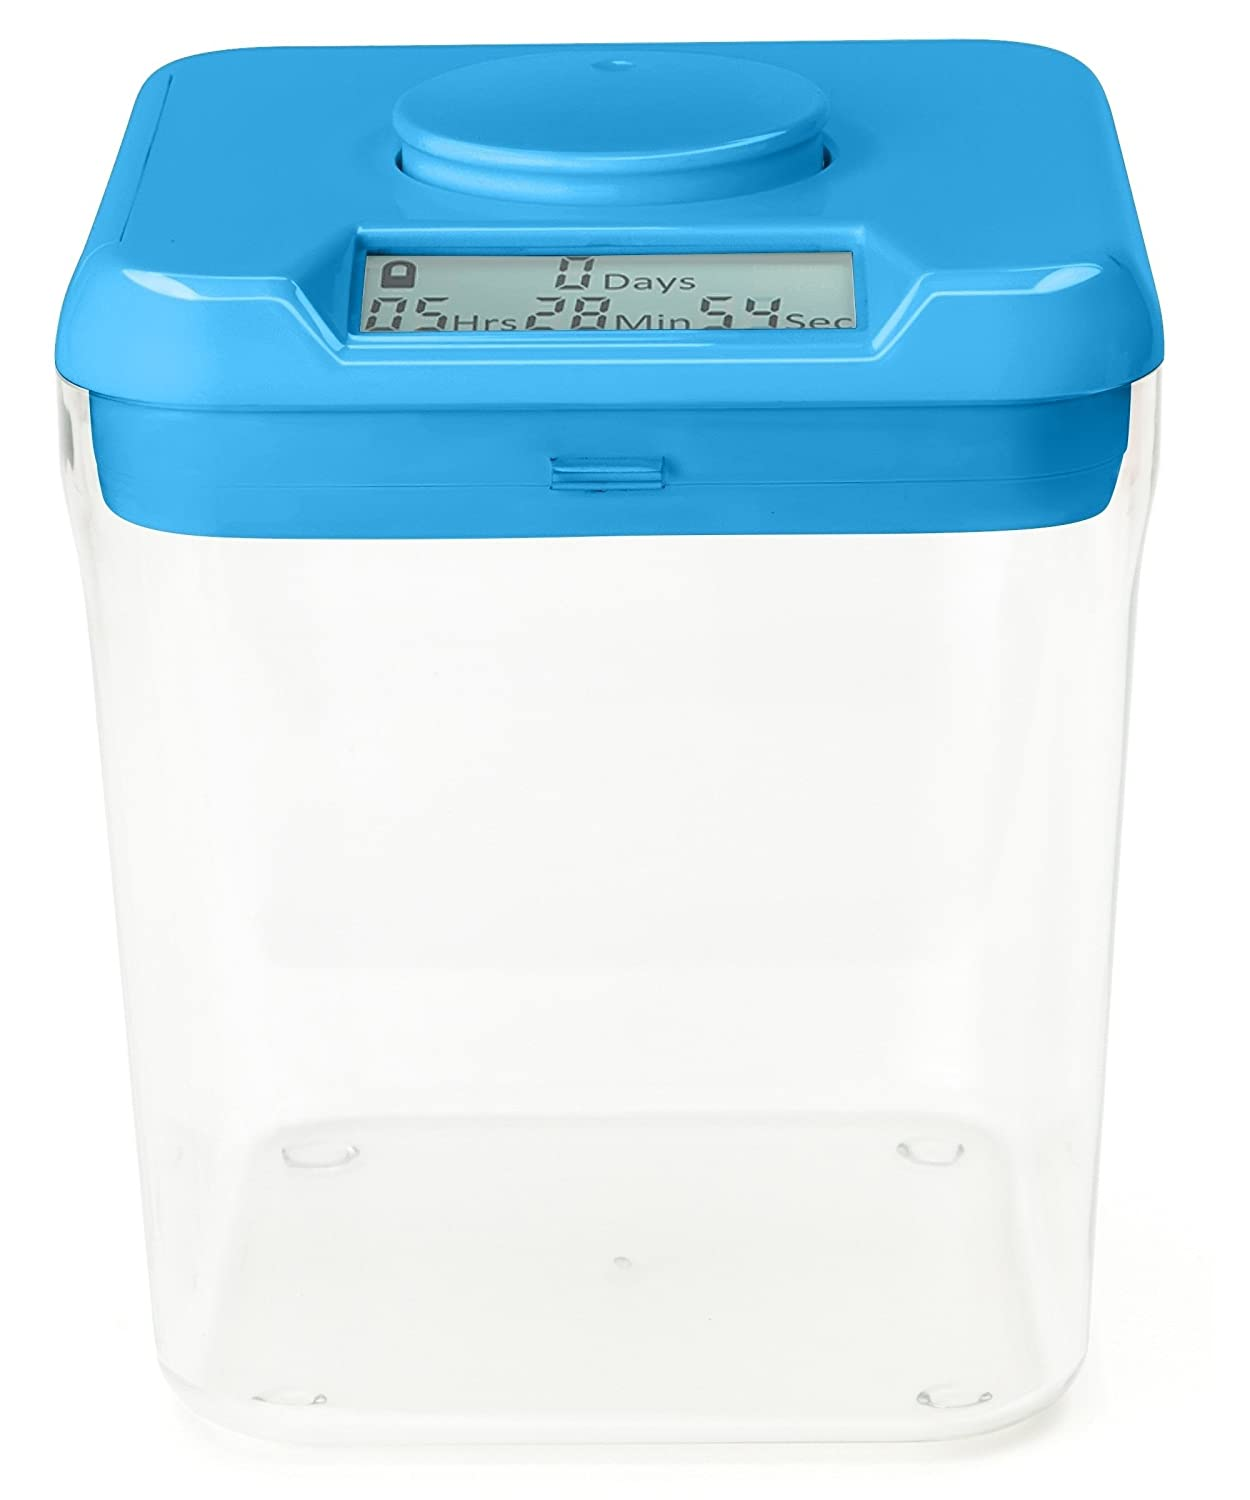 Amazon.com: Kitchen Safe: Time Locking Container (Blue Lid + Clear ...